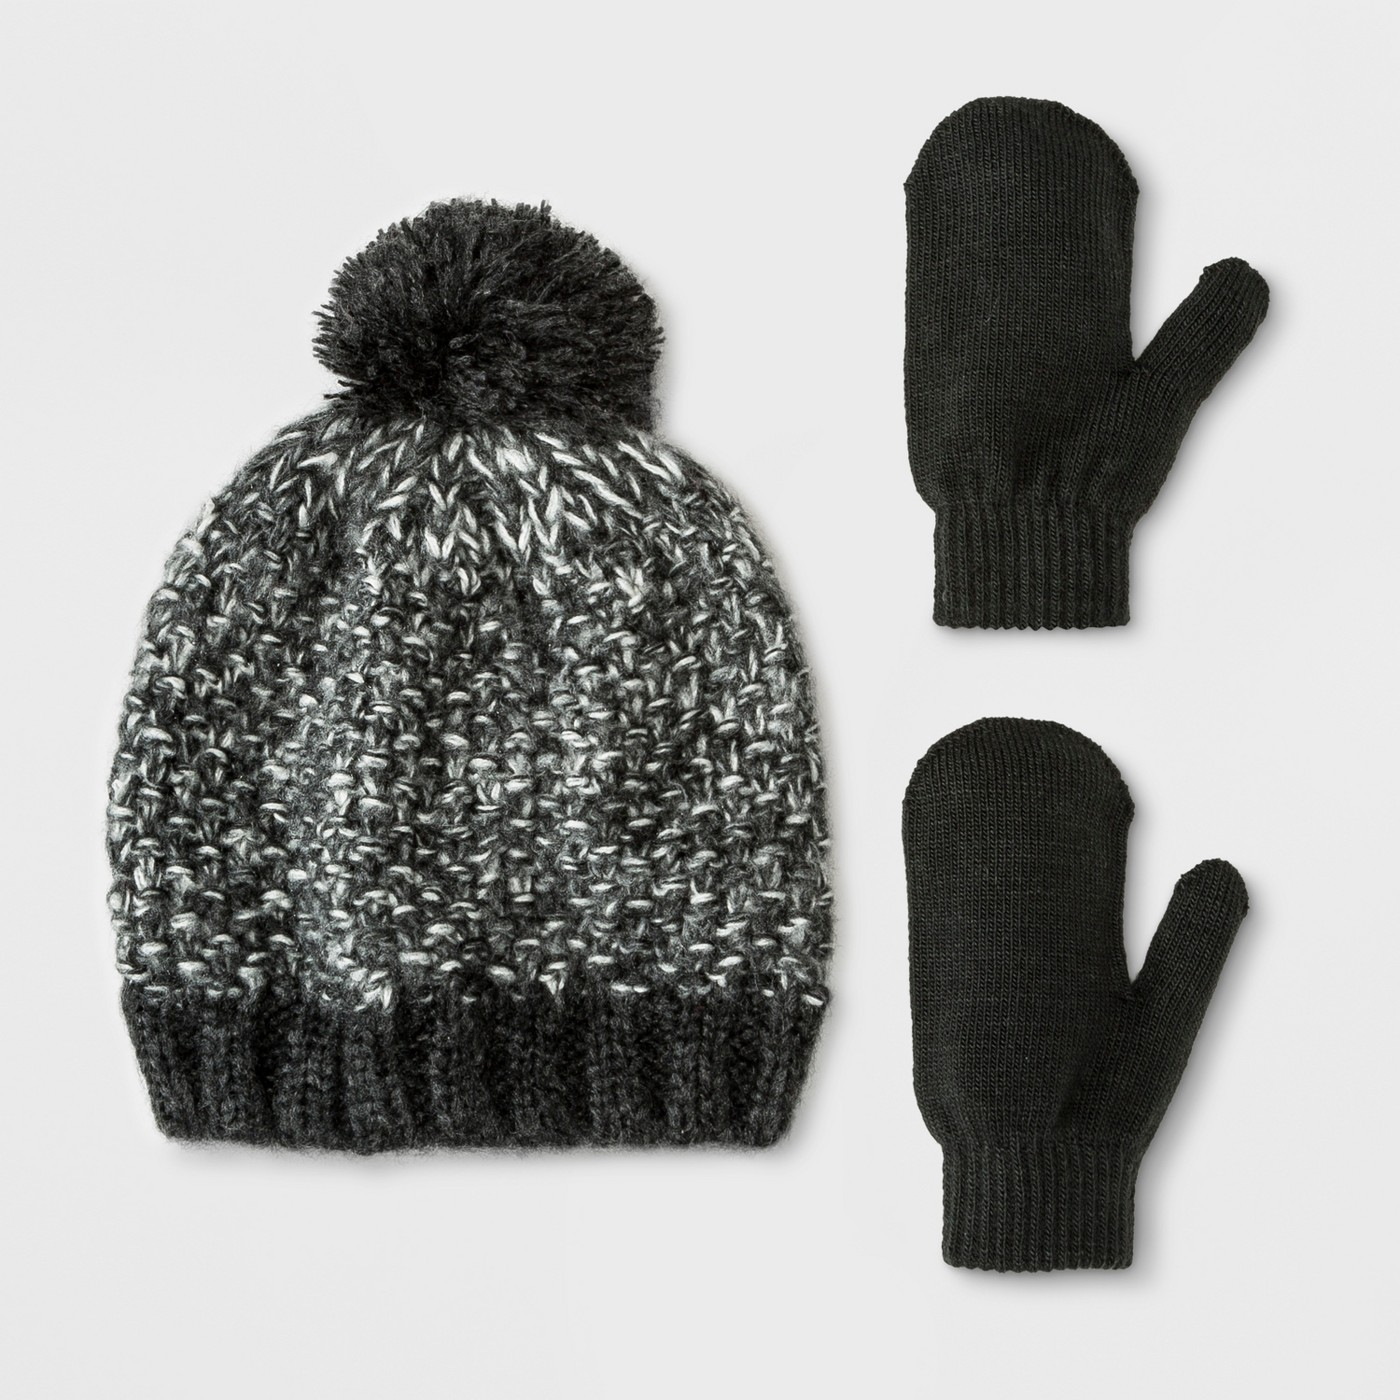 Target Toddler Boys' Beanie and Mitten Set – Cat & Jack™ Black $9.99